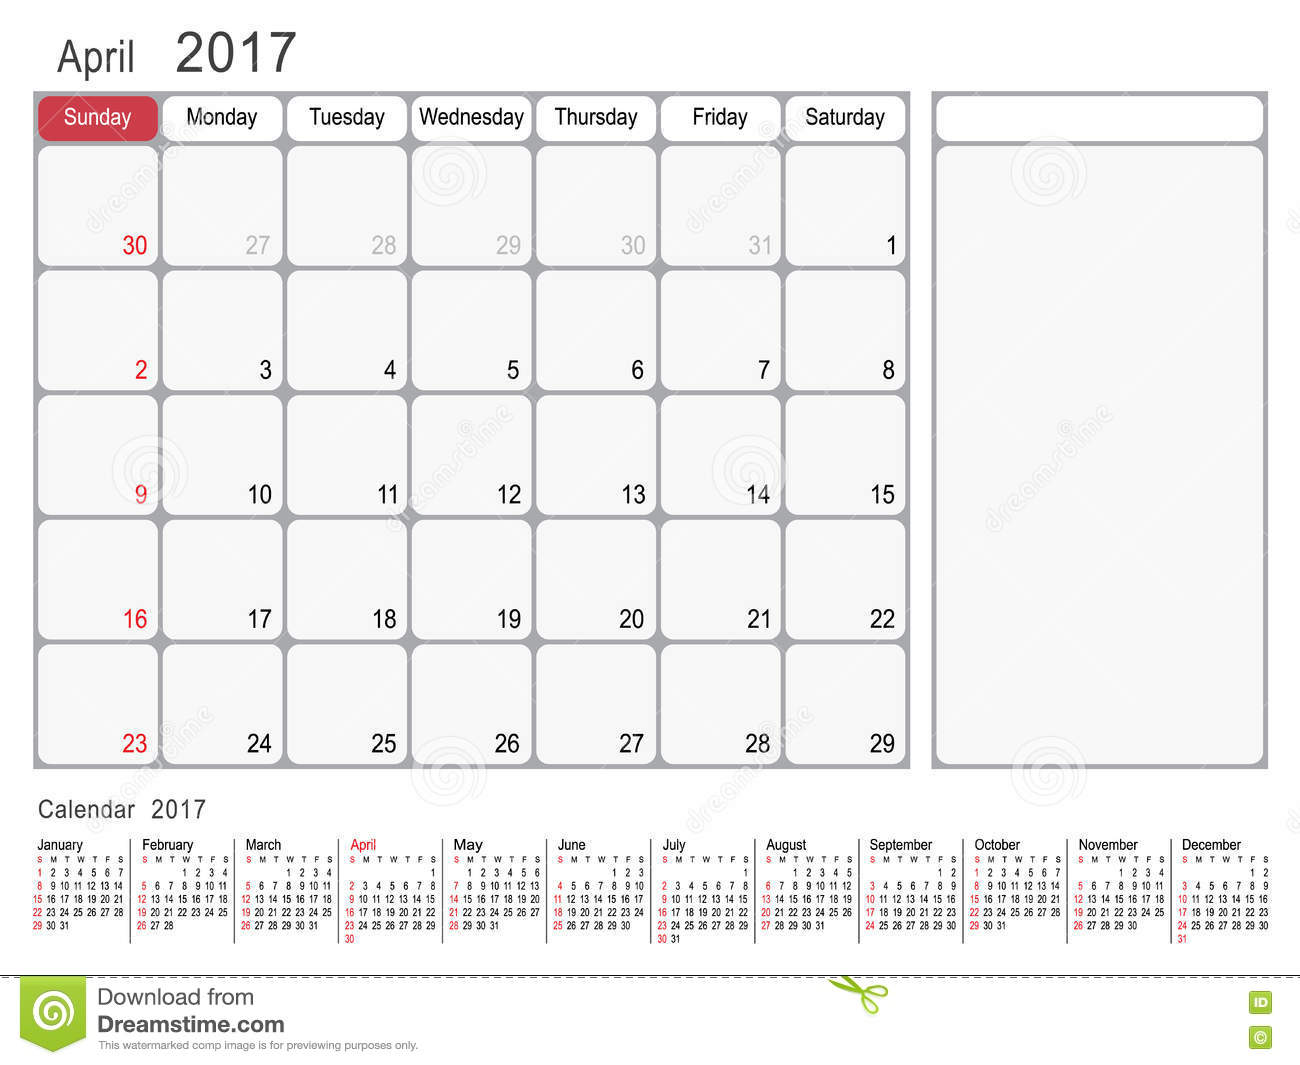 kalender planer im april 2017 vektor abbildung bild. Black Bedroom Furniture Sets. Home Design Ideas